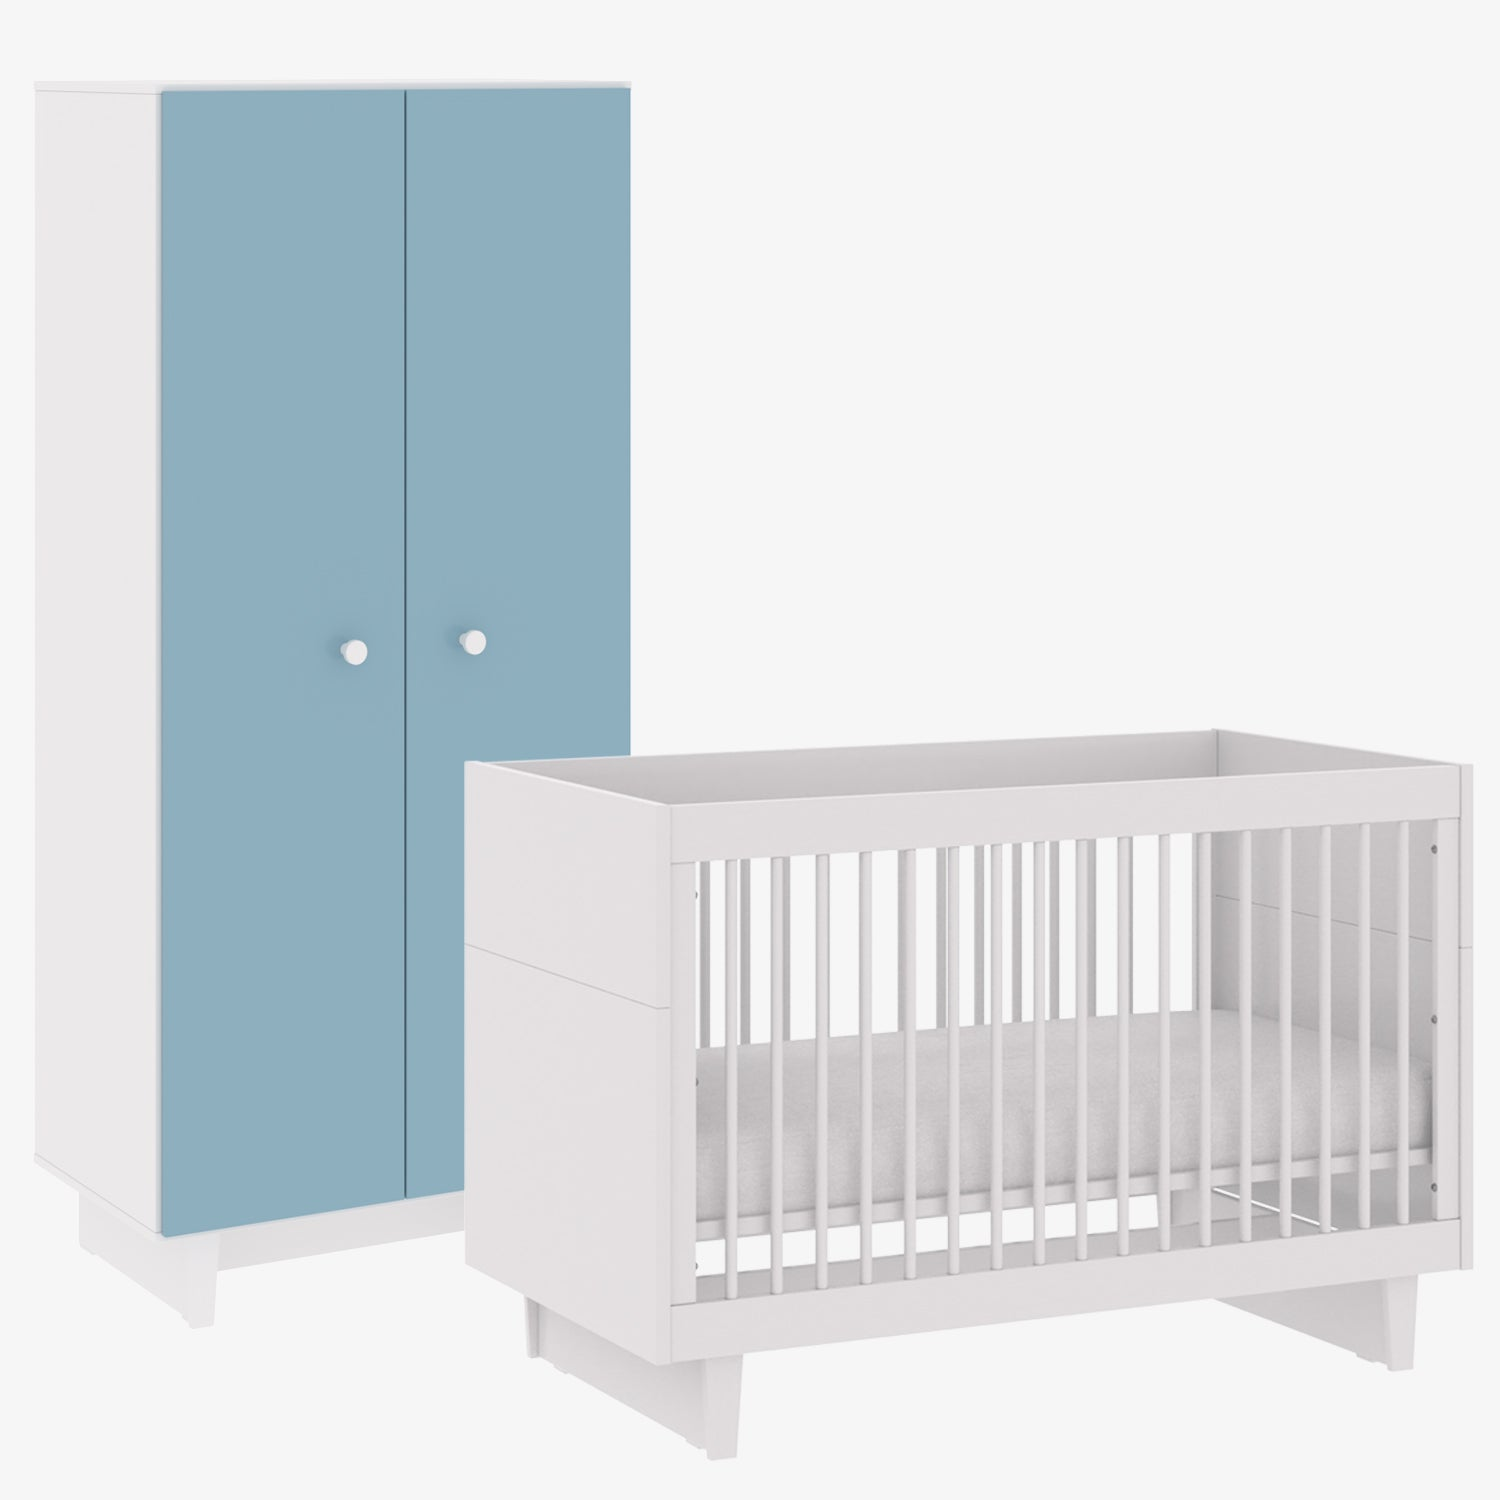 Fino Collection Bundle: Crib & Wardrobe